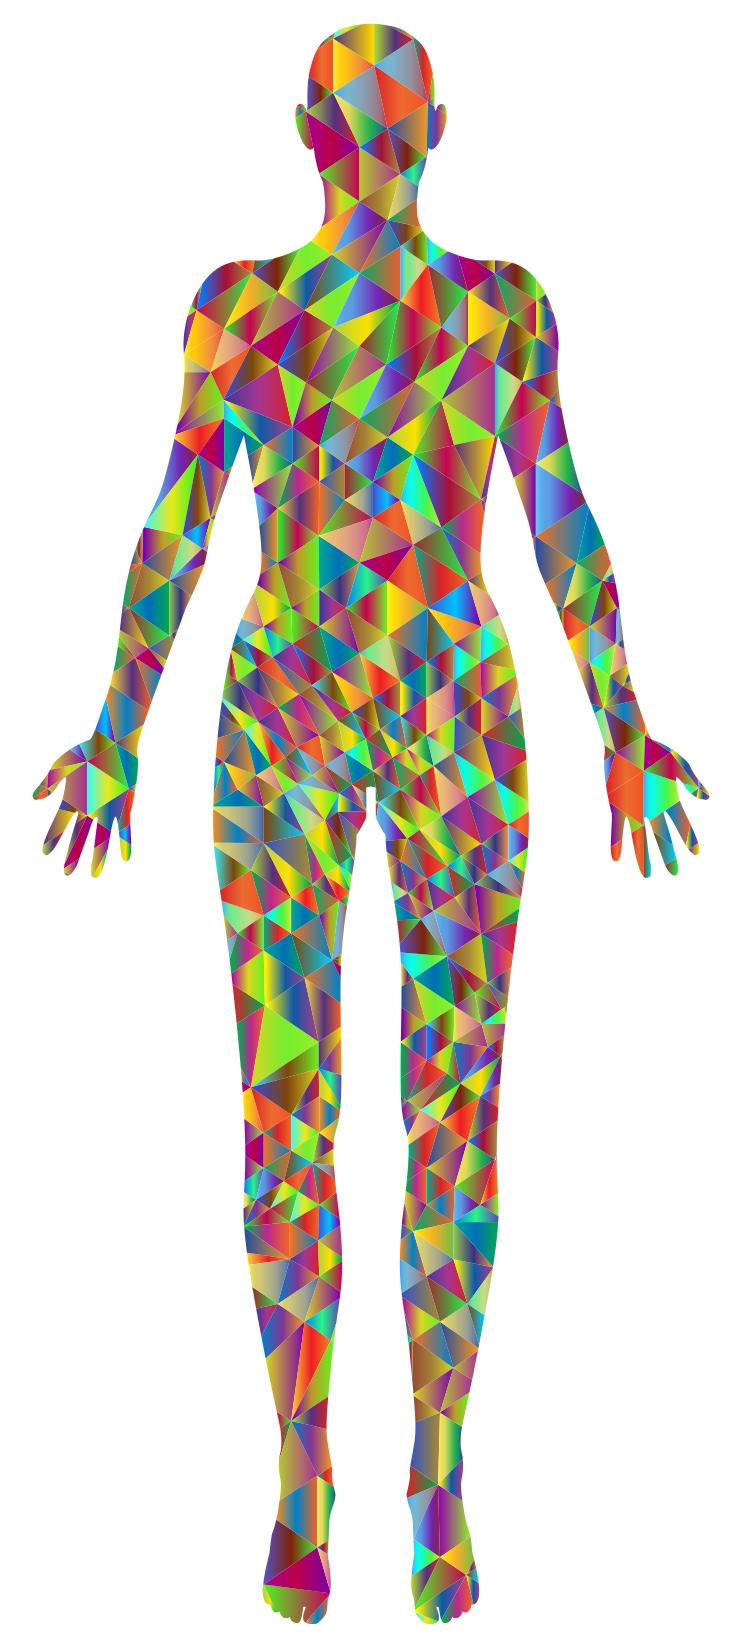 742x1648 Polychromatic Low Poly Female Body Silhouette Clipart